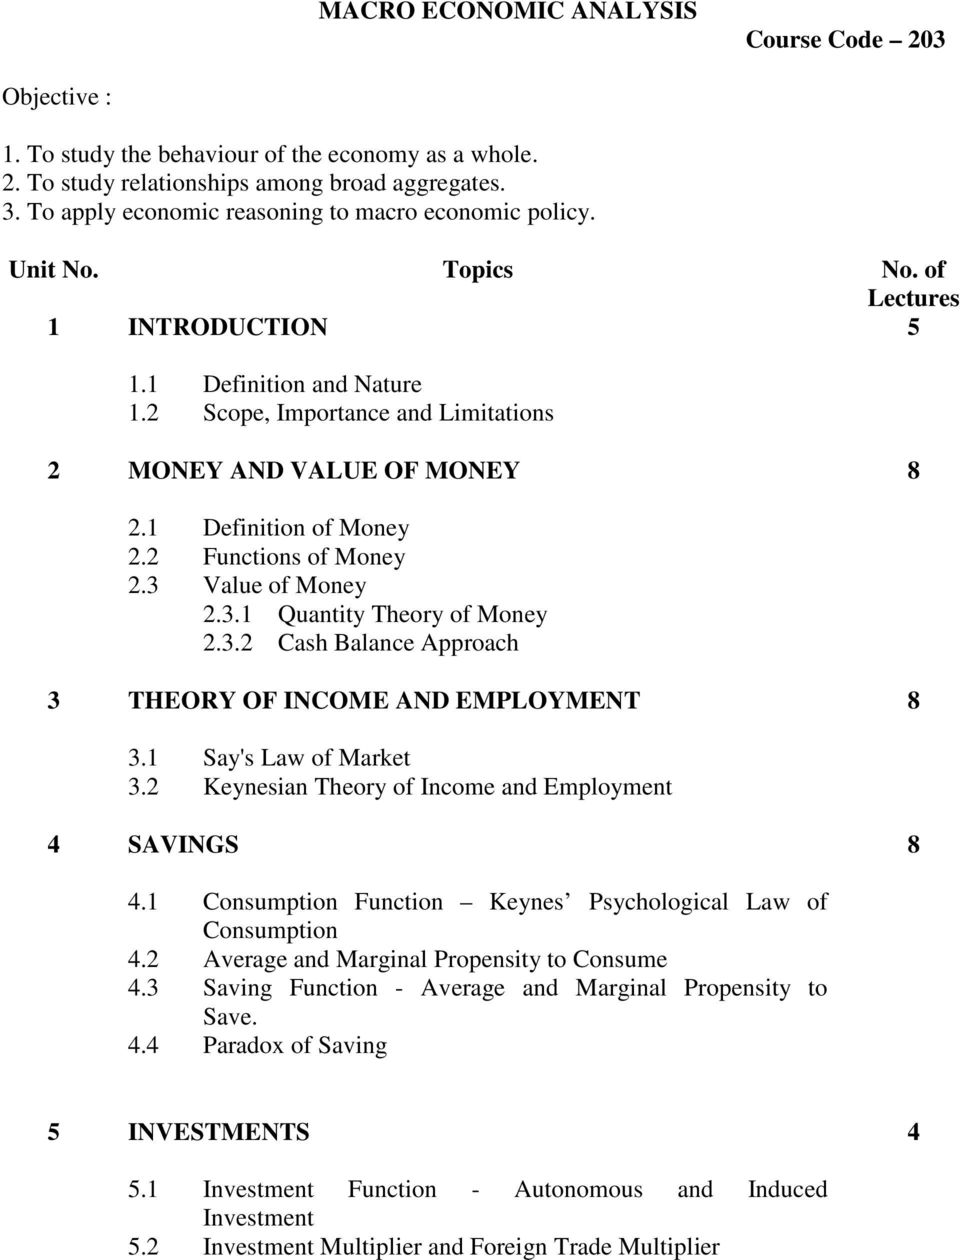 1 Definition of Money 2.2 Functions of Money 2.3 Value of Money 2.3.1 Quantity Theory of Money 2.3.2 Cash Balance Approach 3 THEORY OF INCOME AND EMPLOYMENT 8 3.1 Say's Law of Market 3.